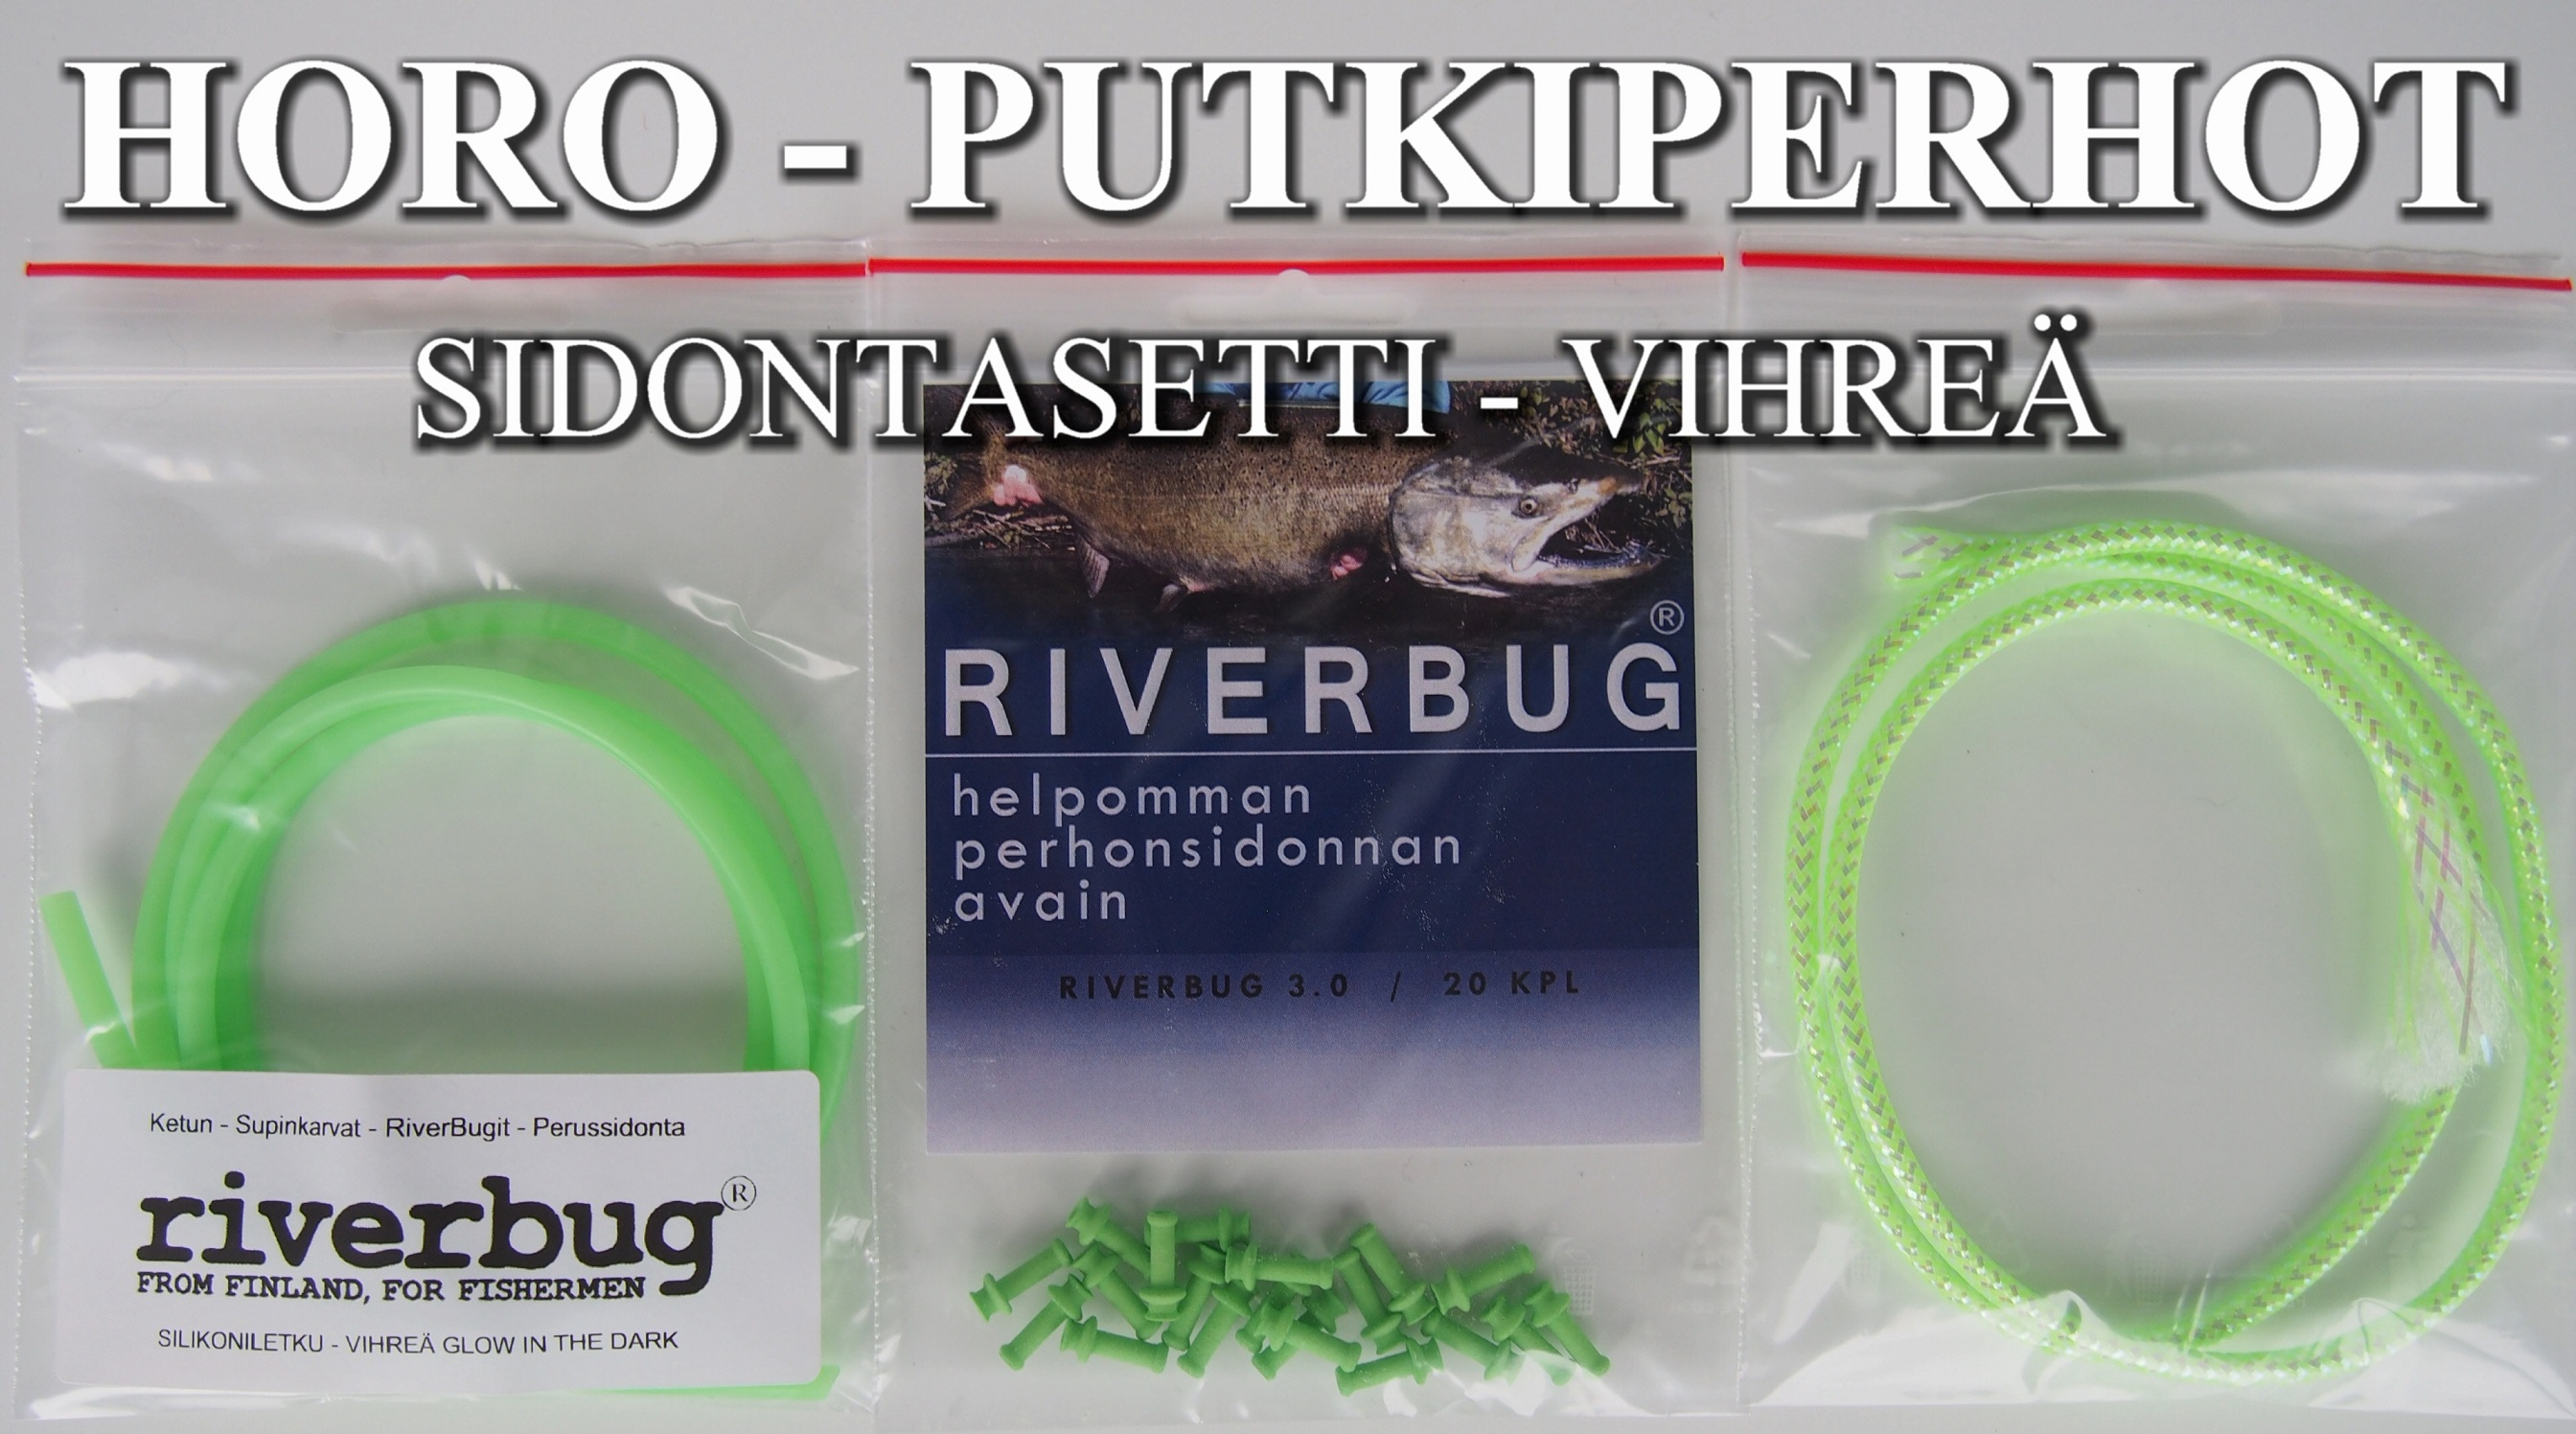 HORO - PUTKIPERHOT can be done easy in RiverBug Tube Fly system. Easy glow in the dark and effective tube flies in just few minutes! #perhonsidonta #riverbug #mylar #mylartube #putkiperhot #perho #lohi #lohiperho #rivertube #riverbugperho